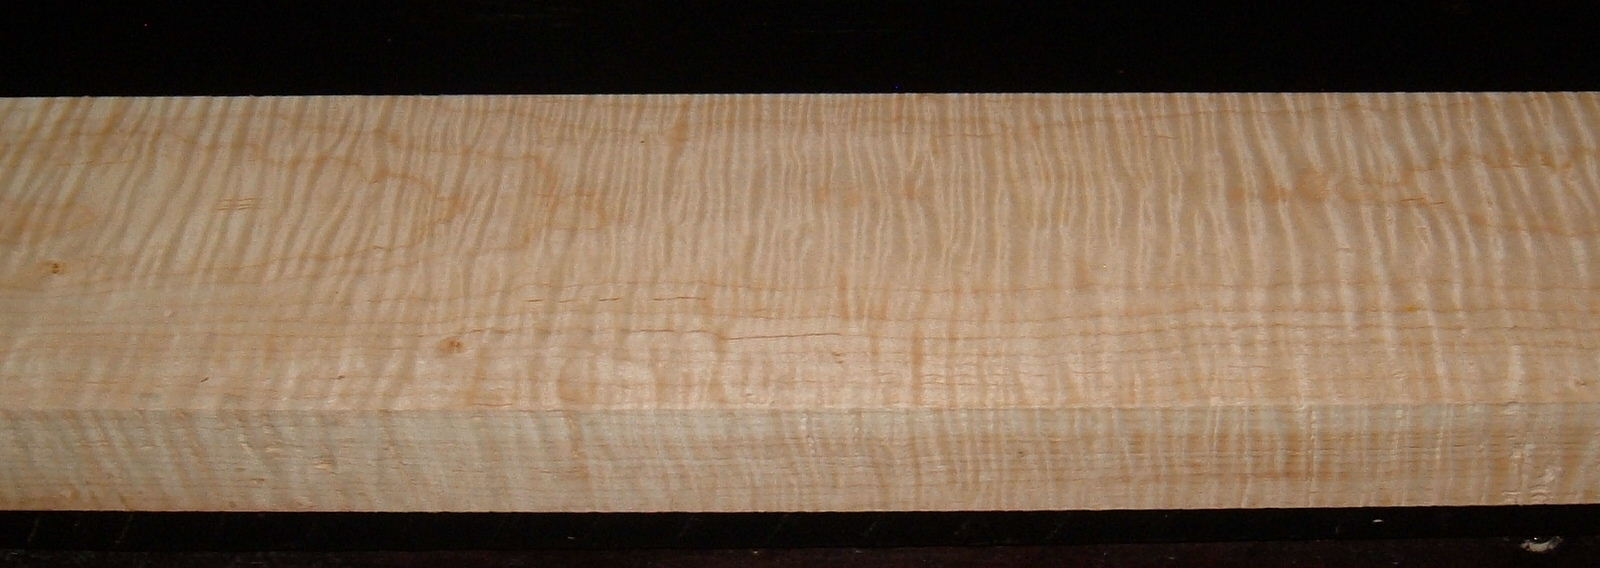 M2003-245, 1-5/8x4-3/4x37, Figure Curly Tiger Maple